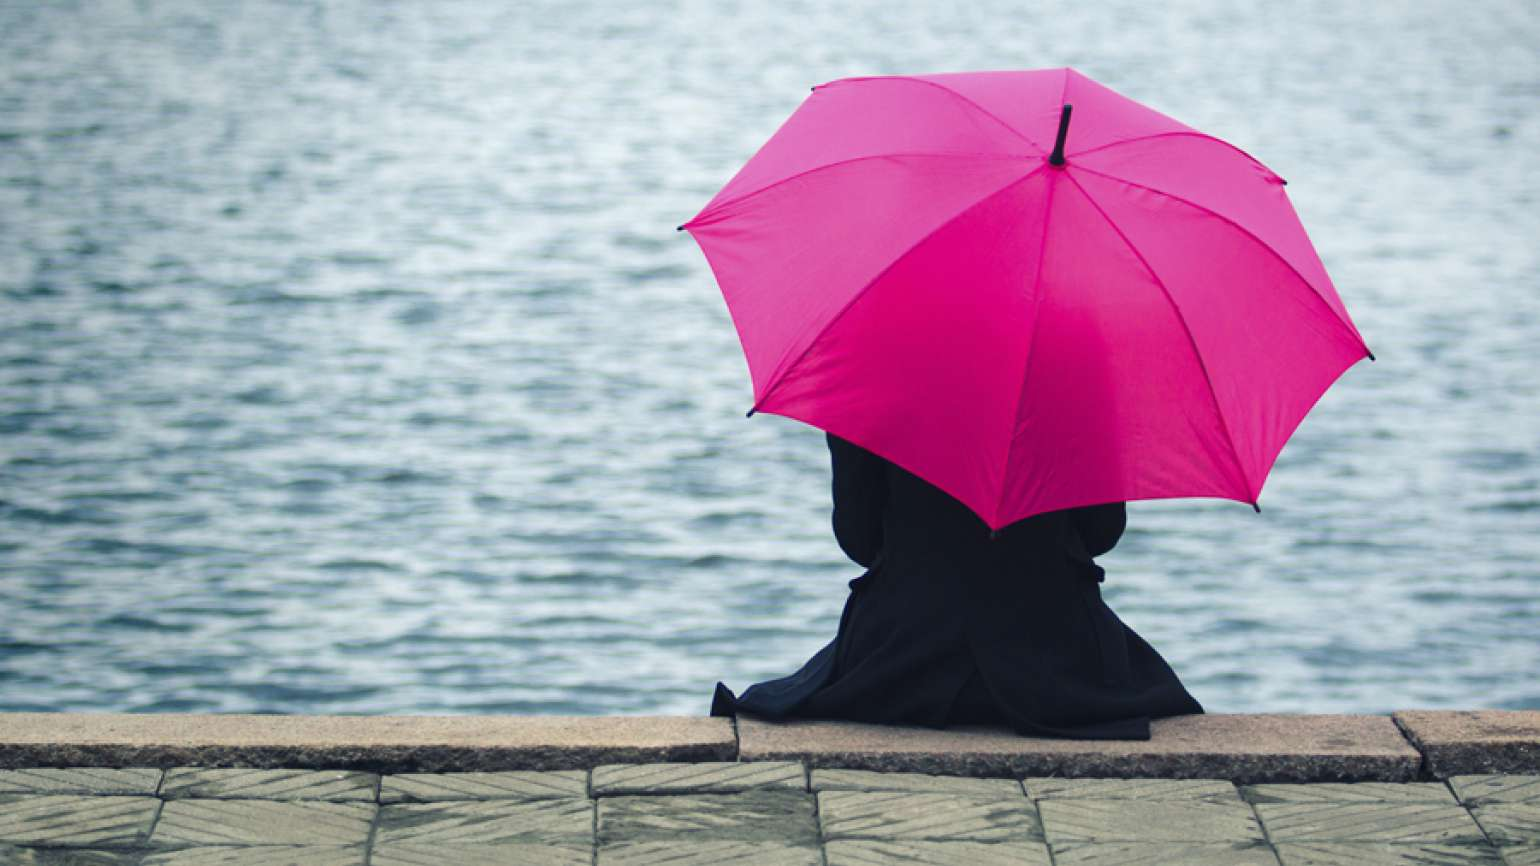 A woman sits at a river's edge holding a pink umbrella preparing for a storm. Prepare for the storms of life with these tips